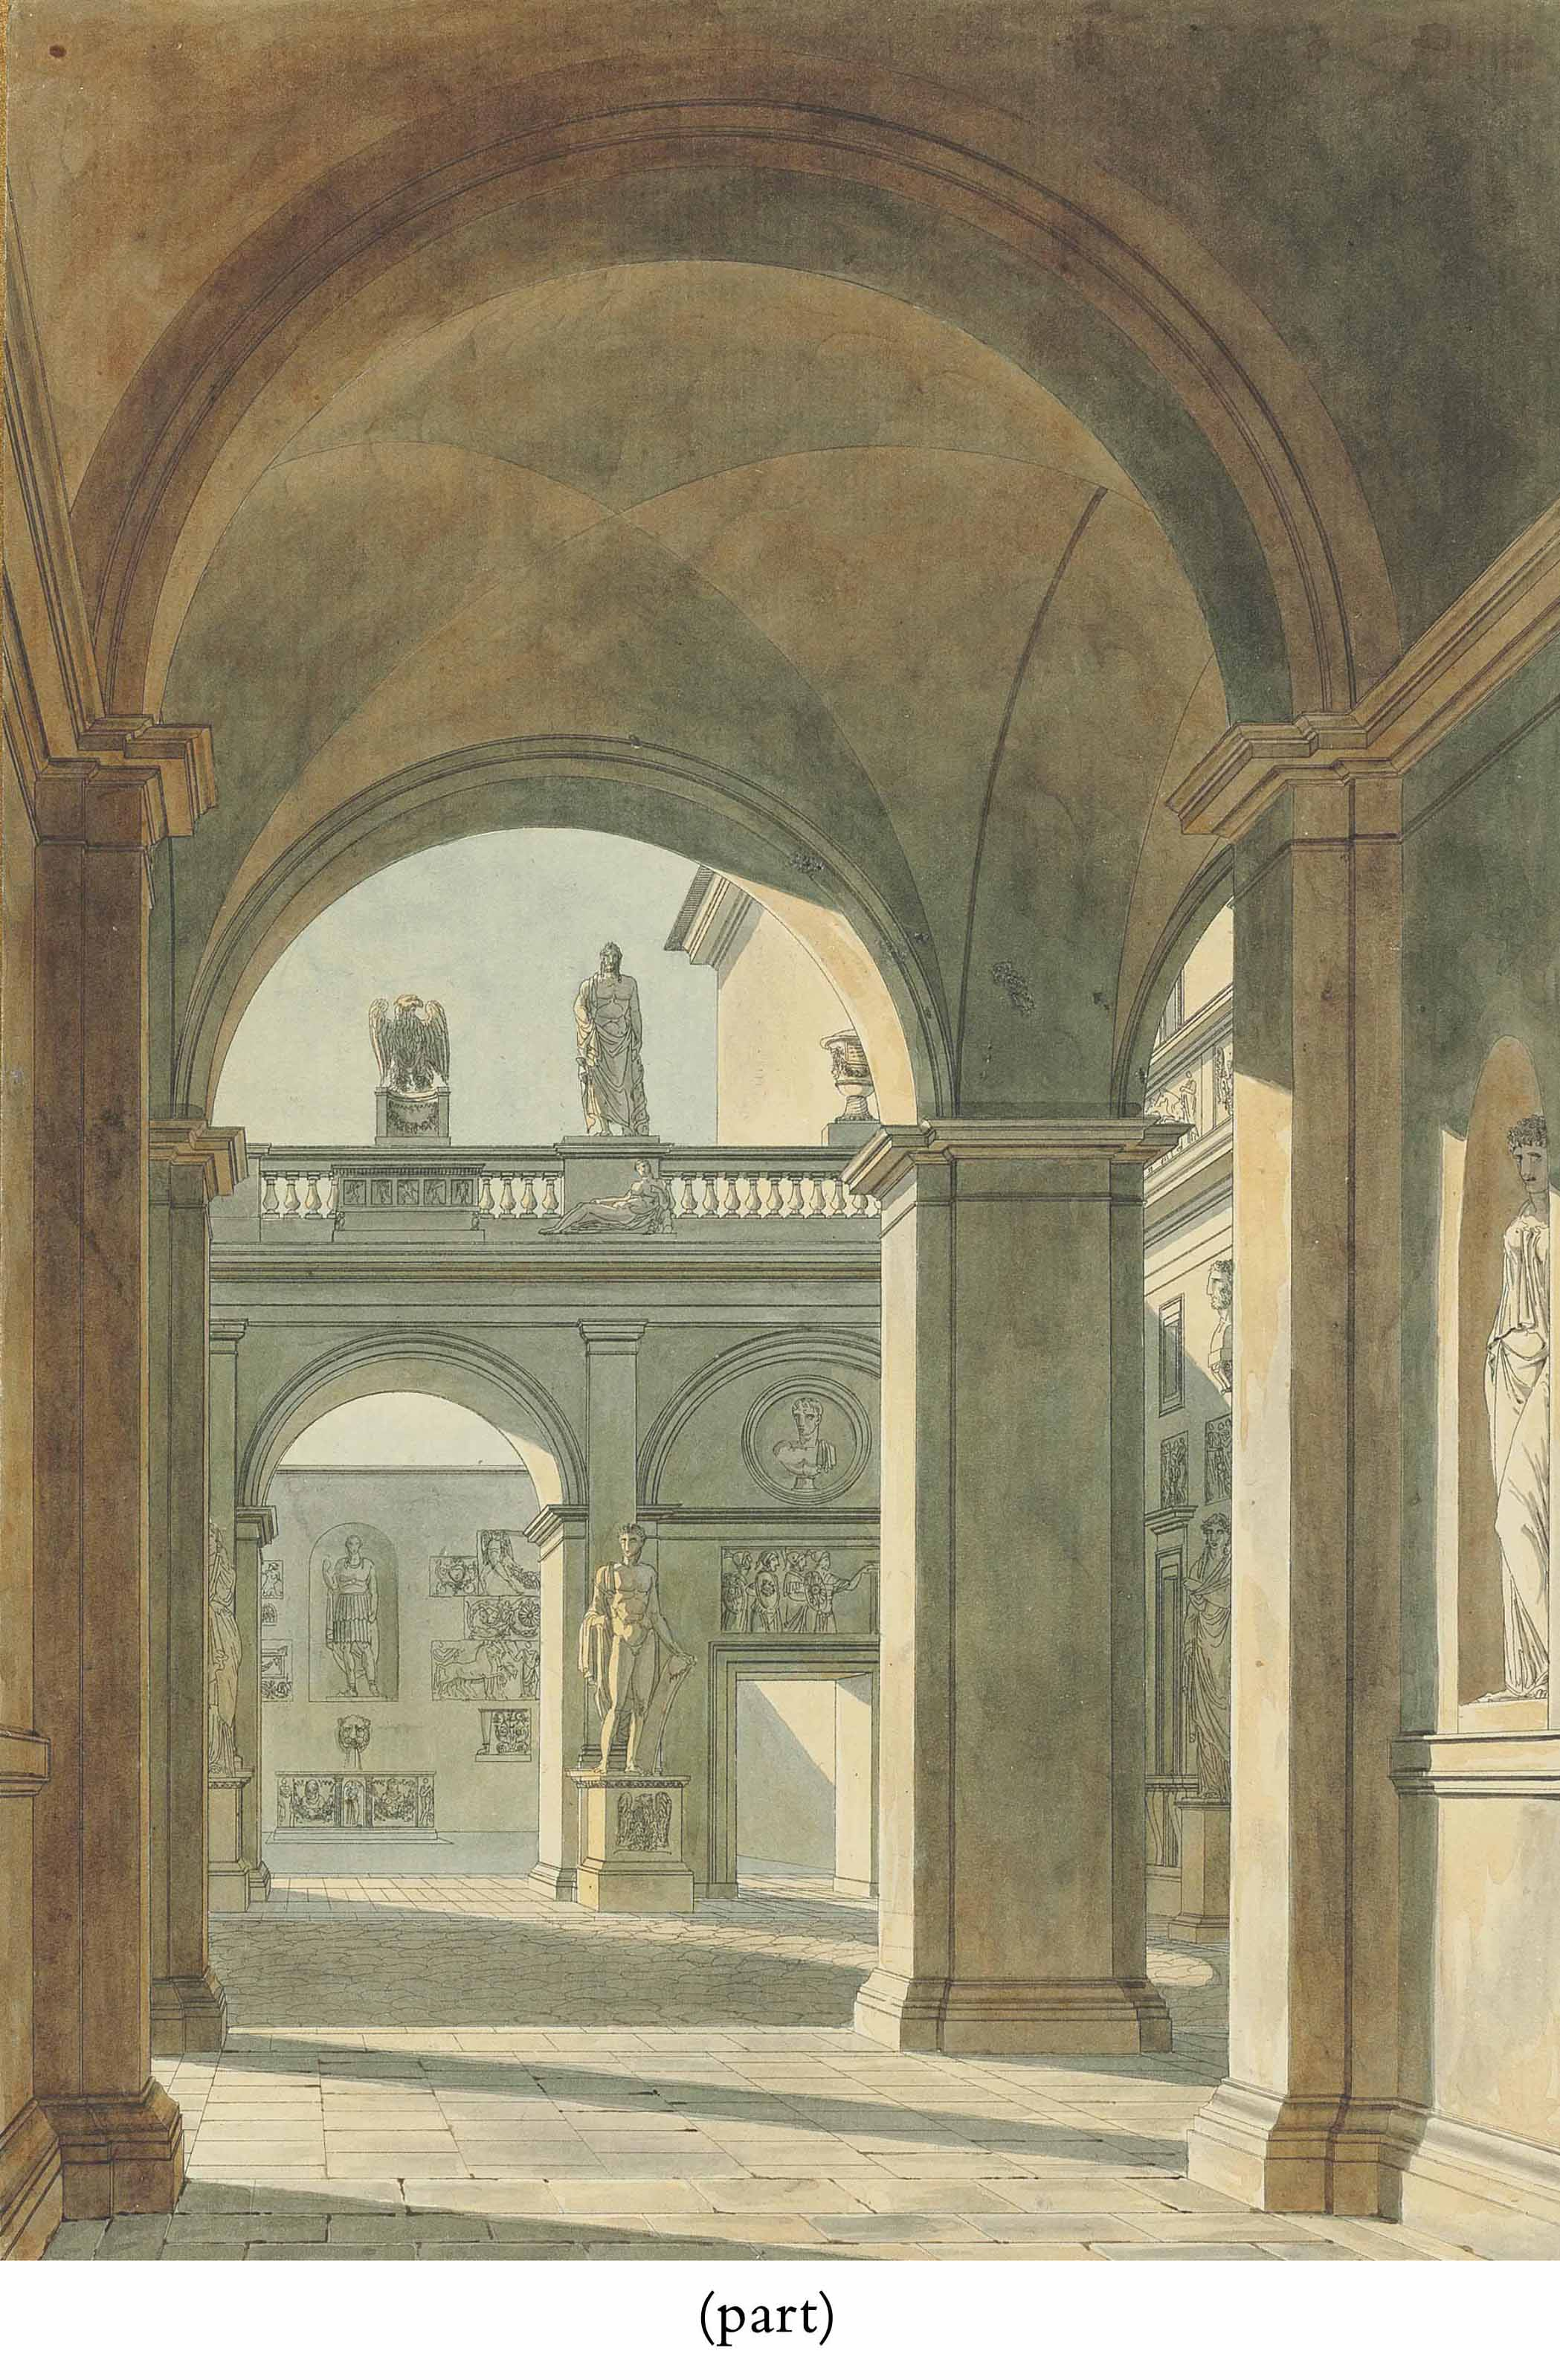 View of the courtyard of Palazzo Mattei, Rome, with statues and antique reliefs; and View of the interior of the Church of San Lorenzo fuori le mura, Rome